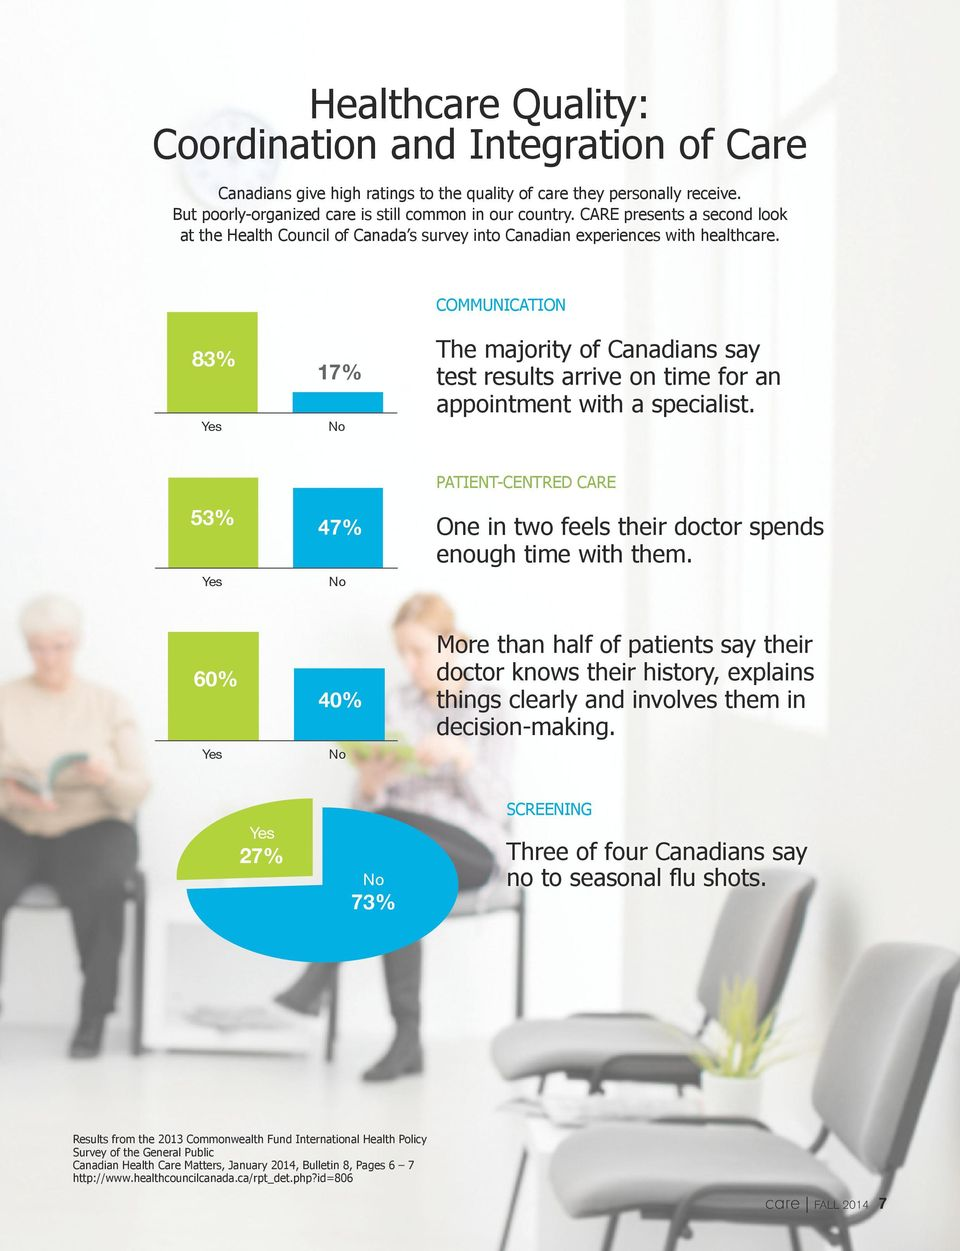 COMMUNICATION 83% Yes 17% No The majority of Canadians say test results arrive on time for an appointment with a specialist.